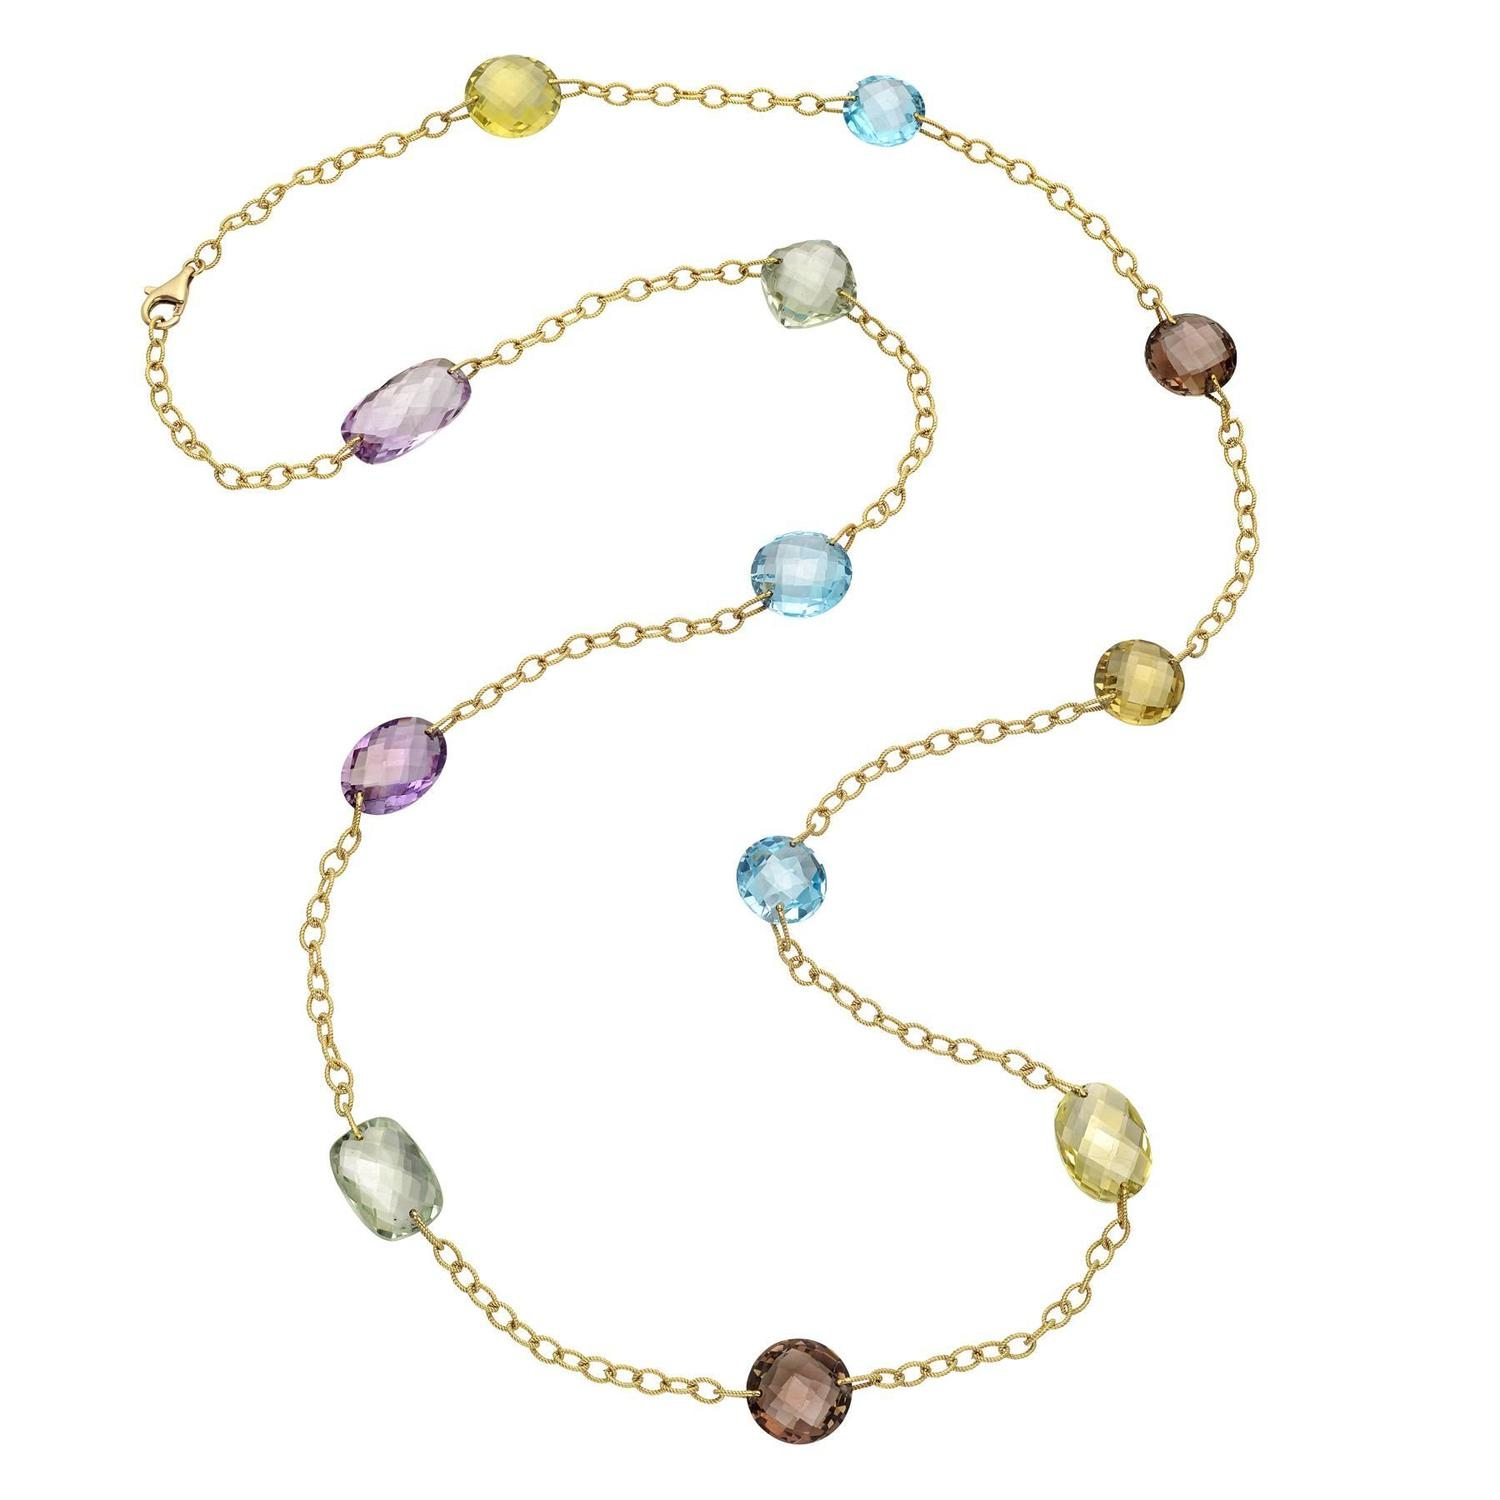 Gold and Multicolored Gemstone Long Necklace at 1stdibs